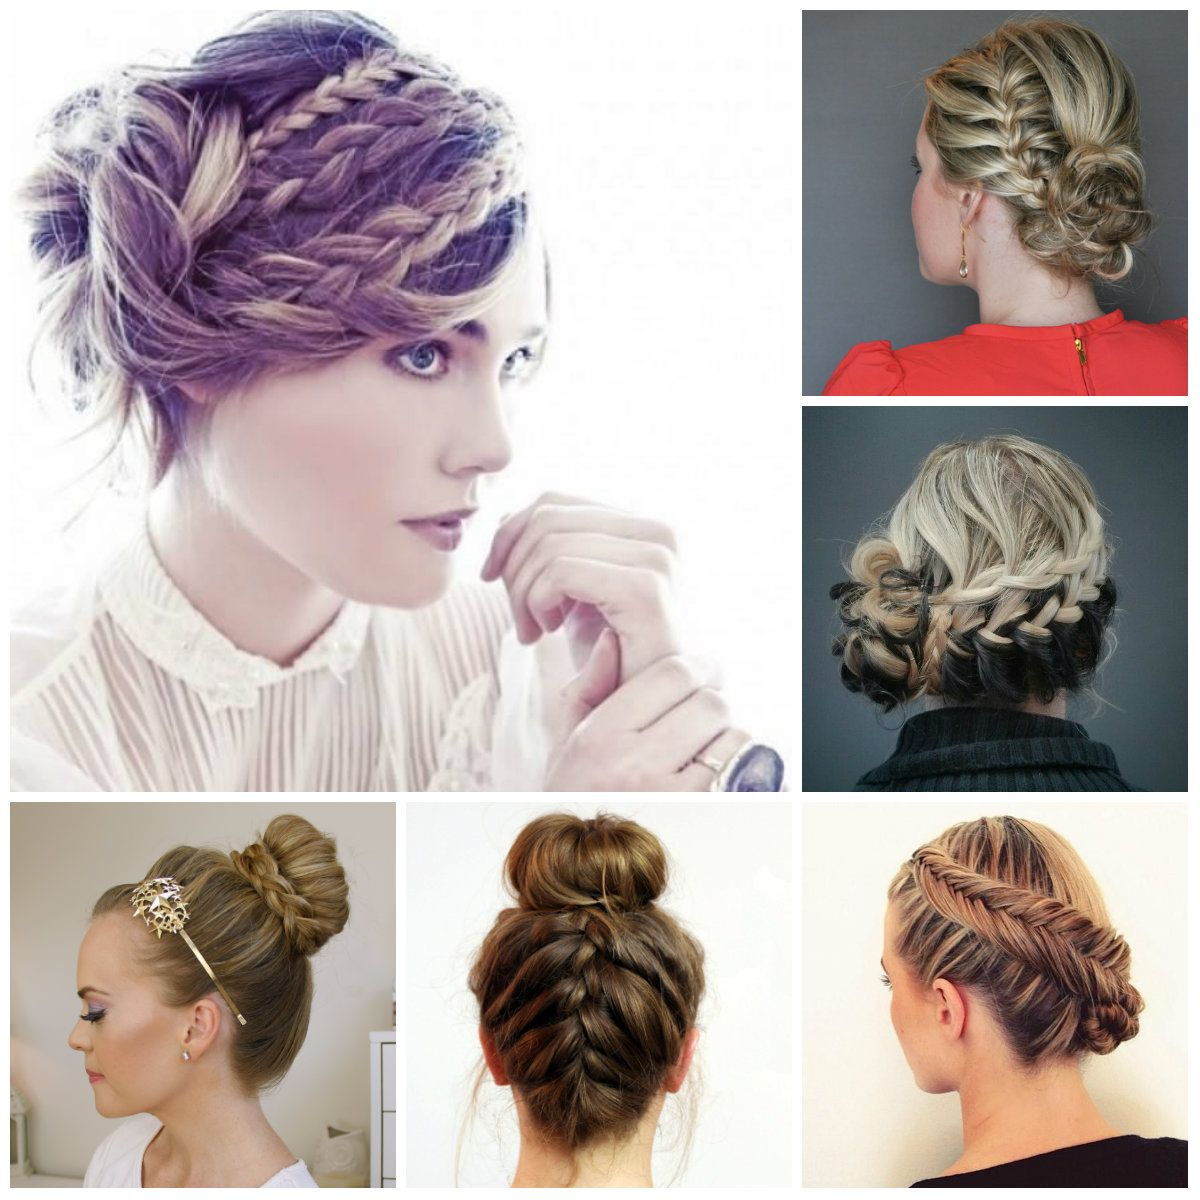 Pin by Amy Park on Katie\'s Wedding board | Pinterest | Hairstyles ...